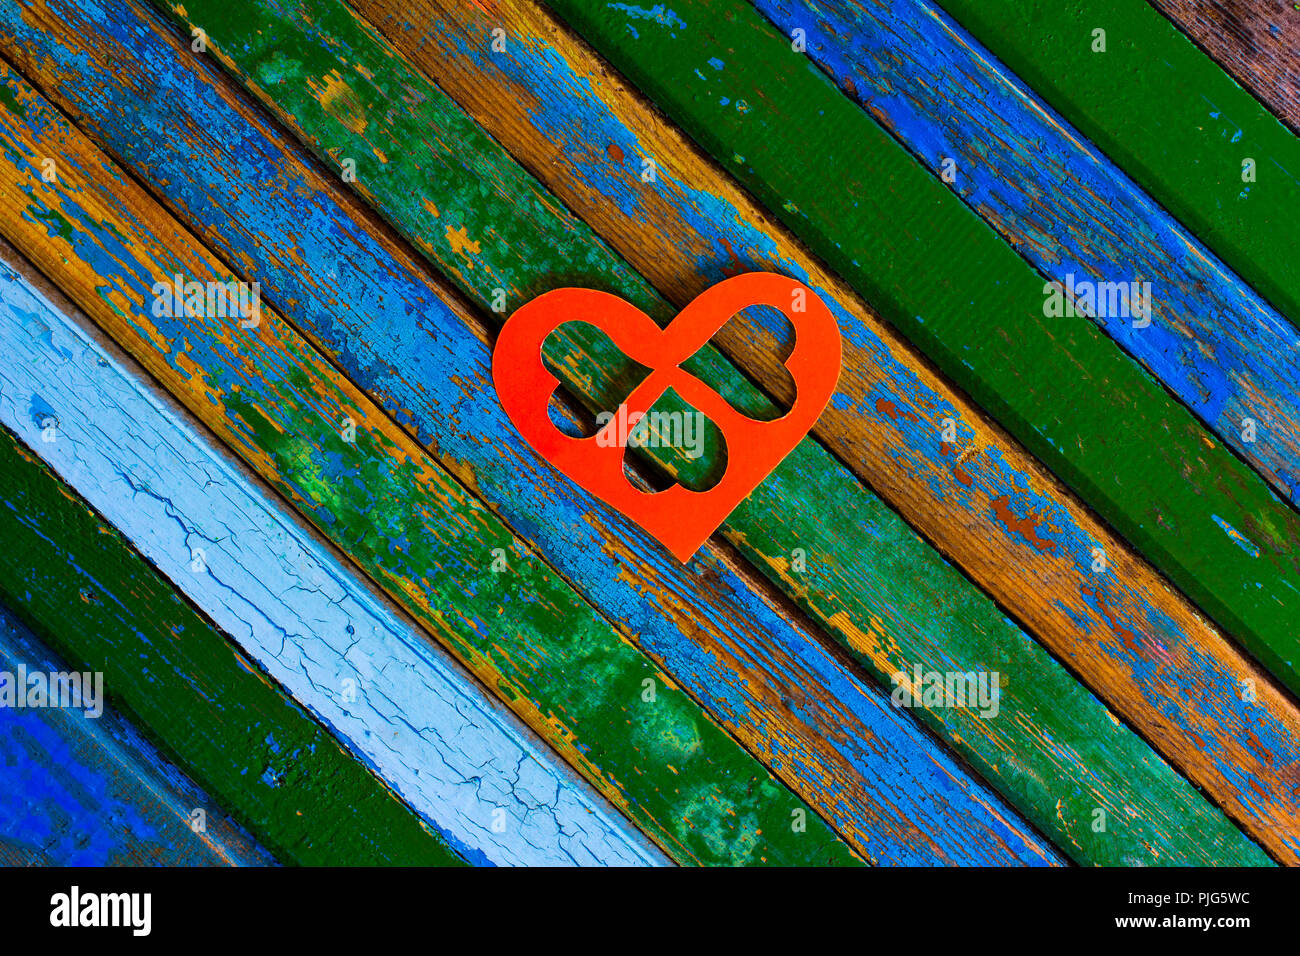 The Color Background From Old Wooden Levels Stock Photo 217944088